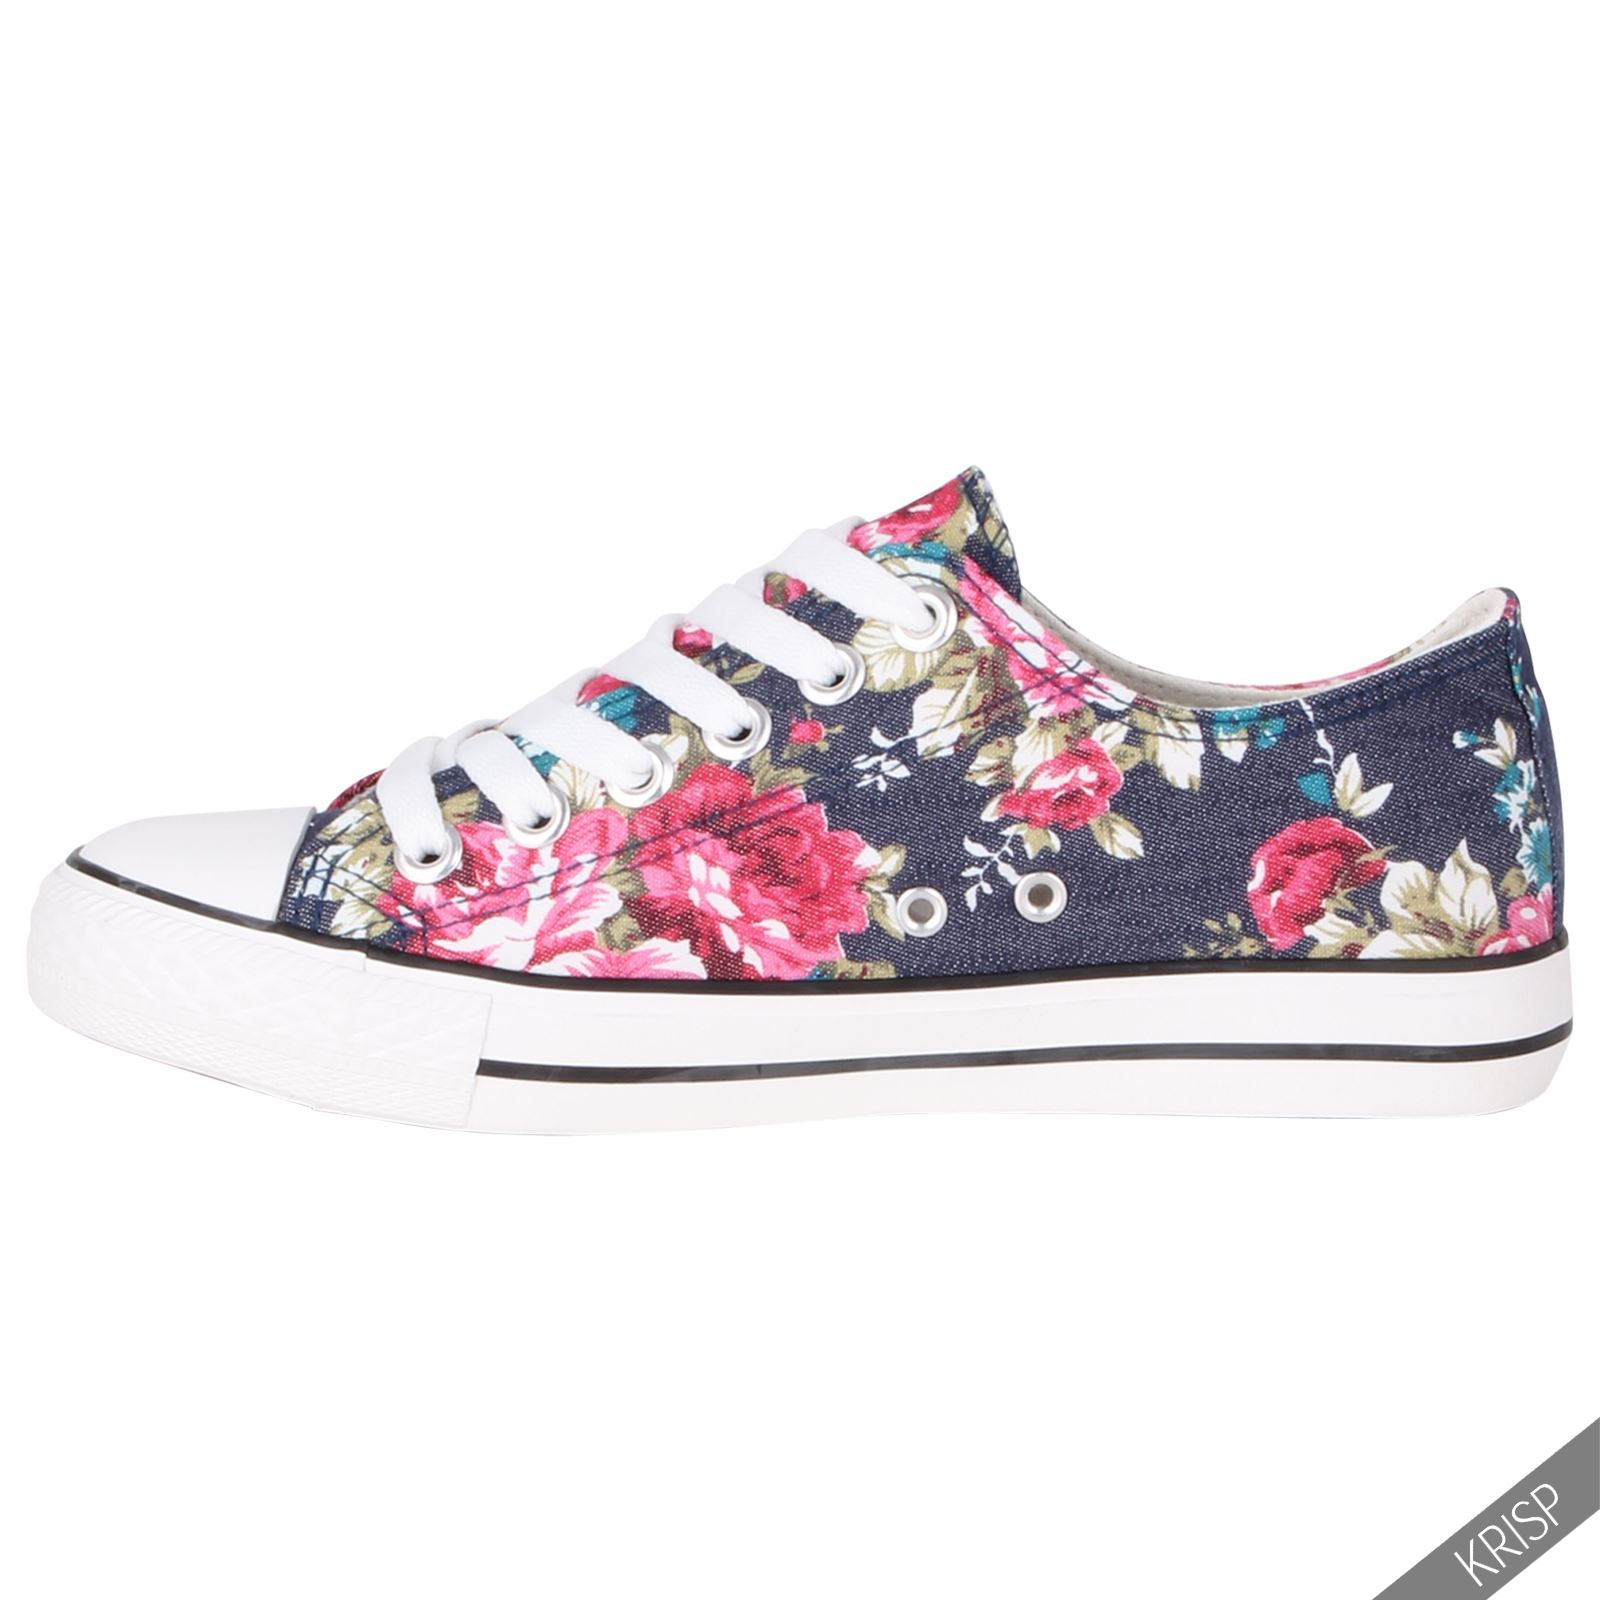 Womens Floral Plain Leopard Low Top Fashion Trainers Flat Shoes Summer Sneakers | EBay